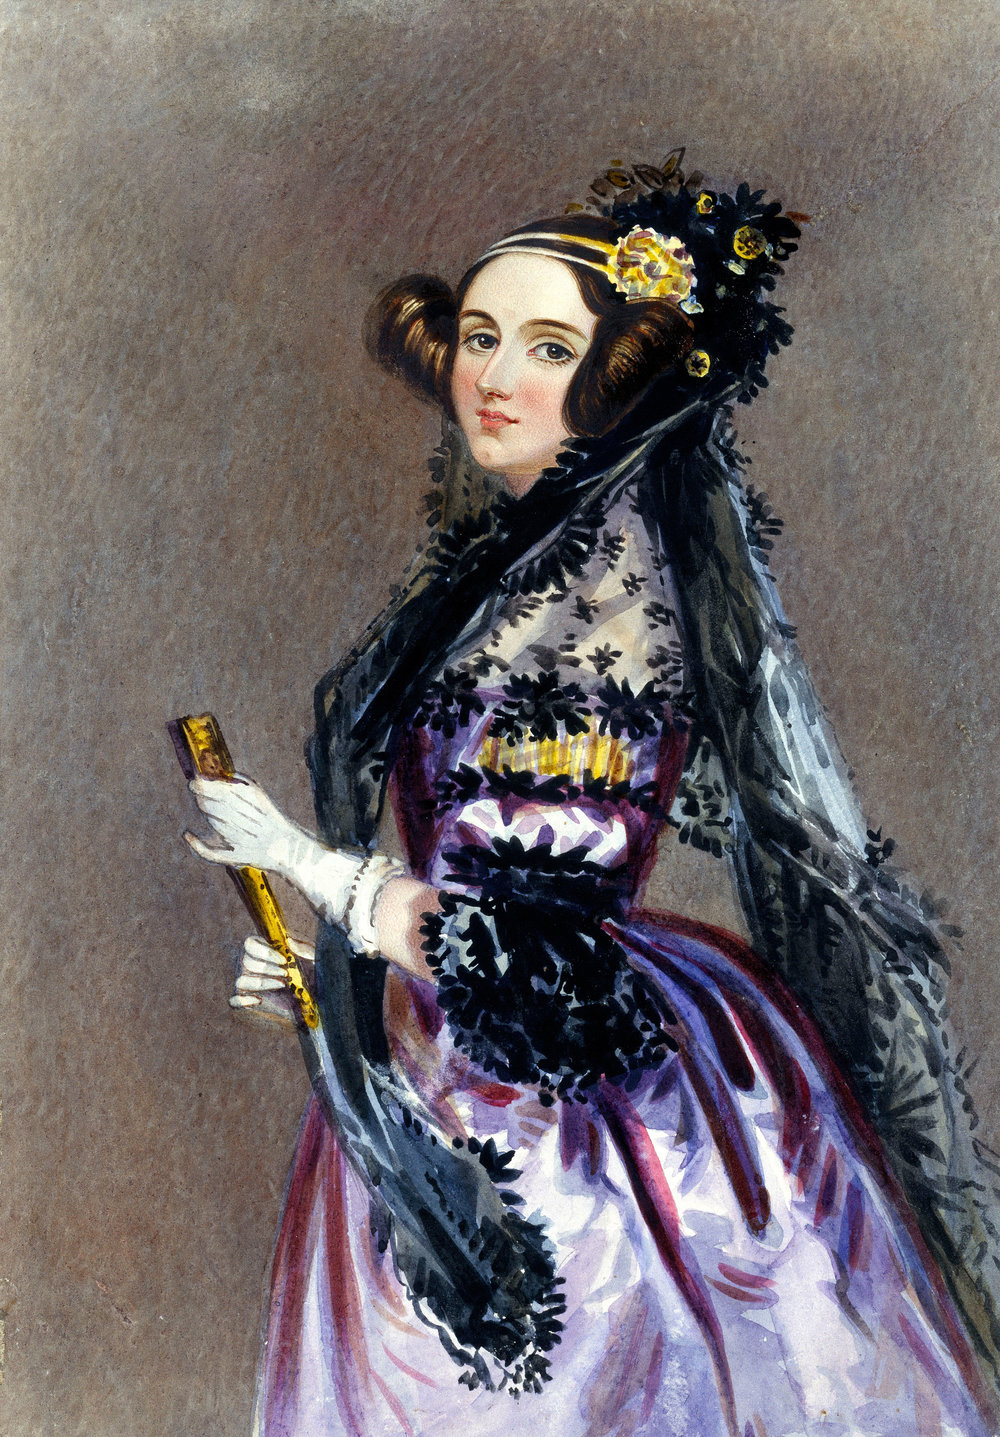 Ada Lovelace, the first programmer in history.